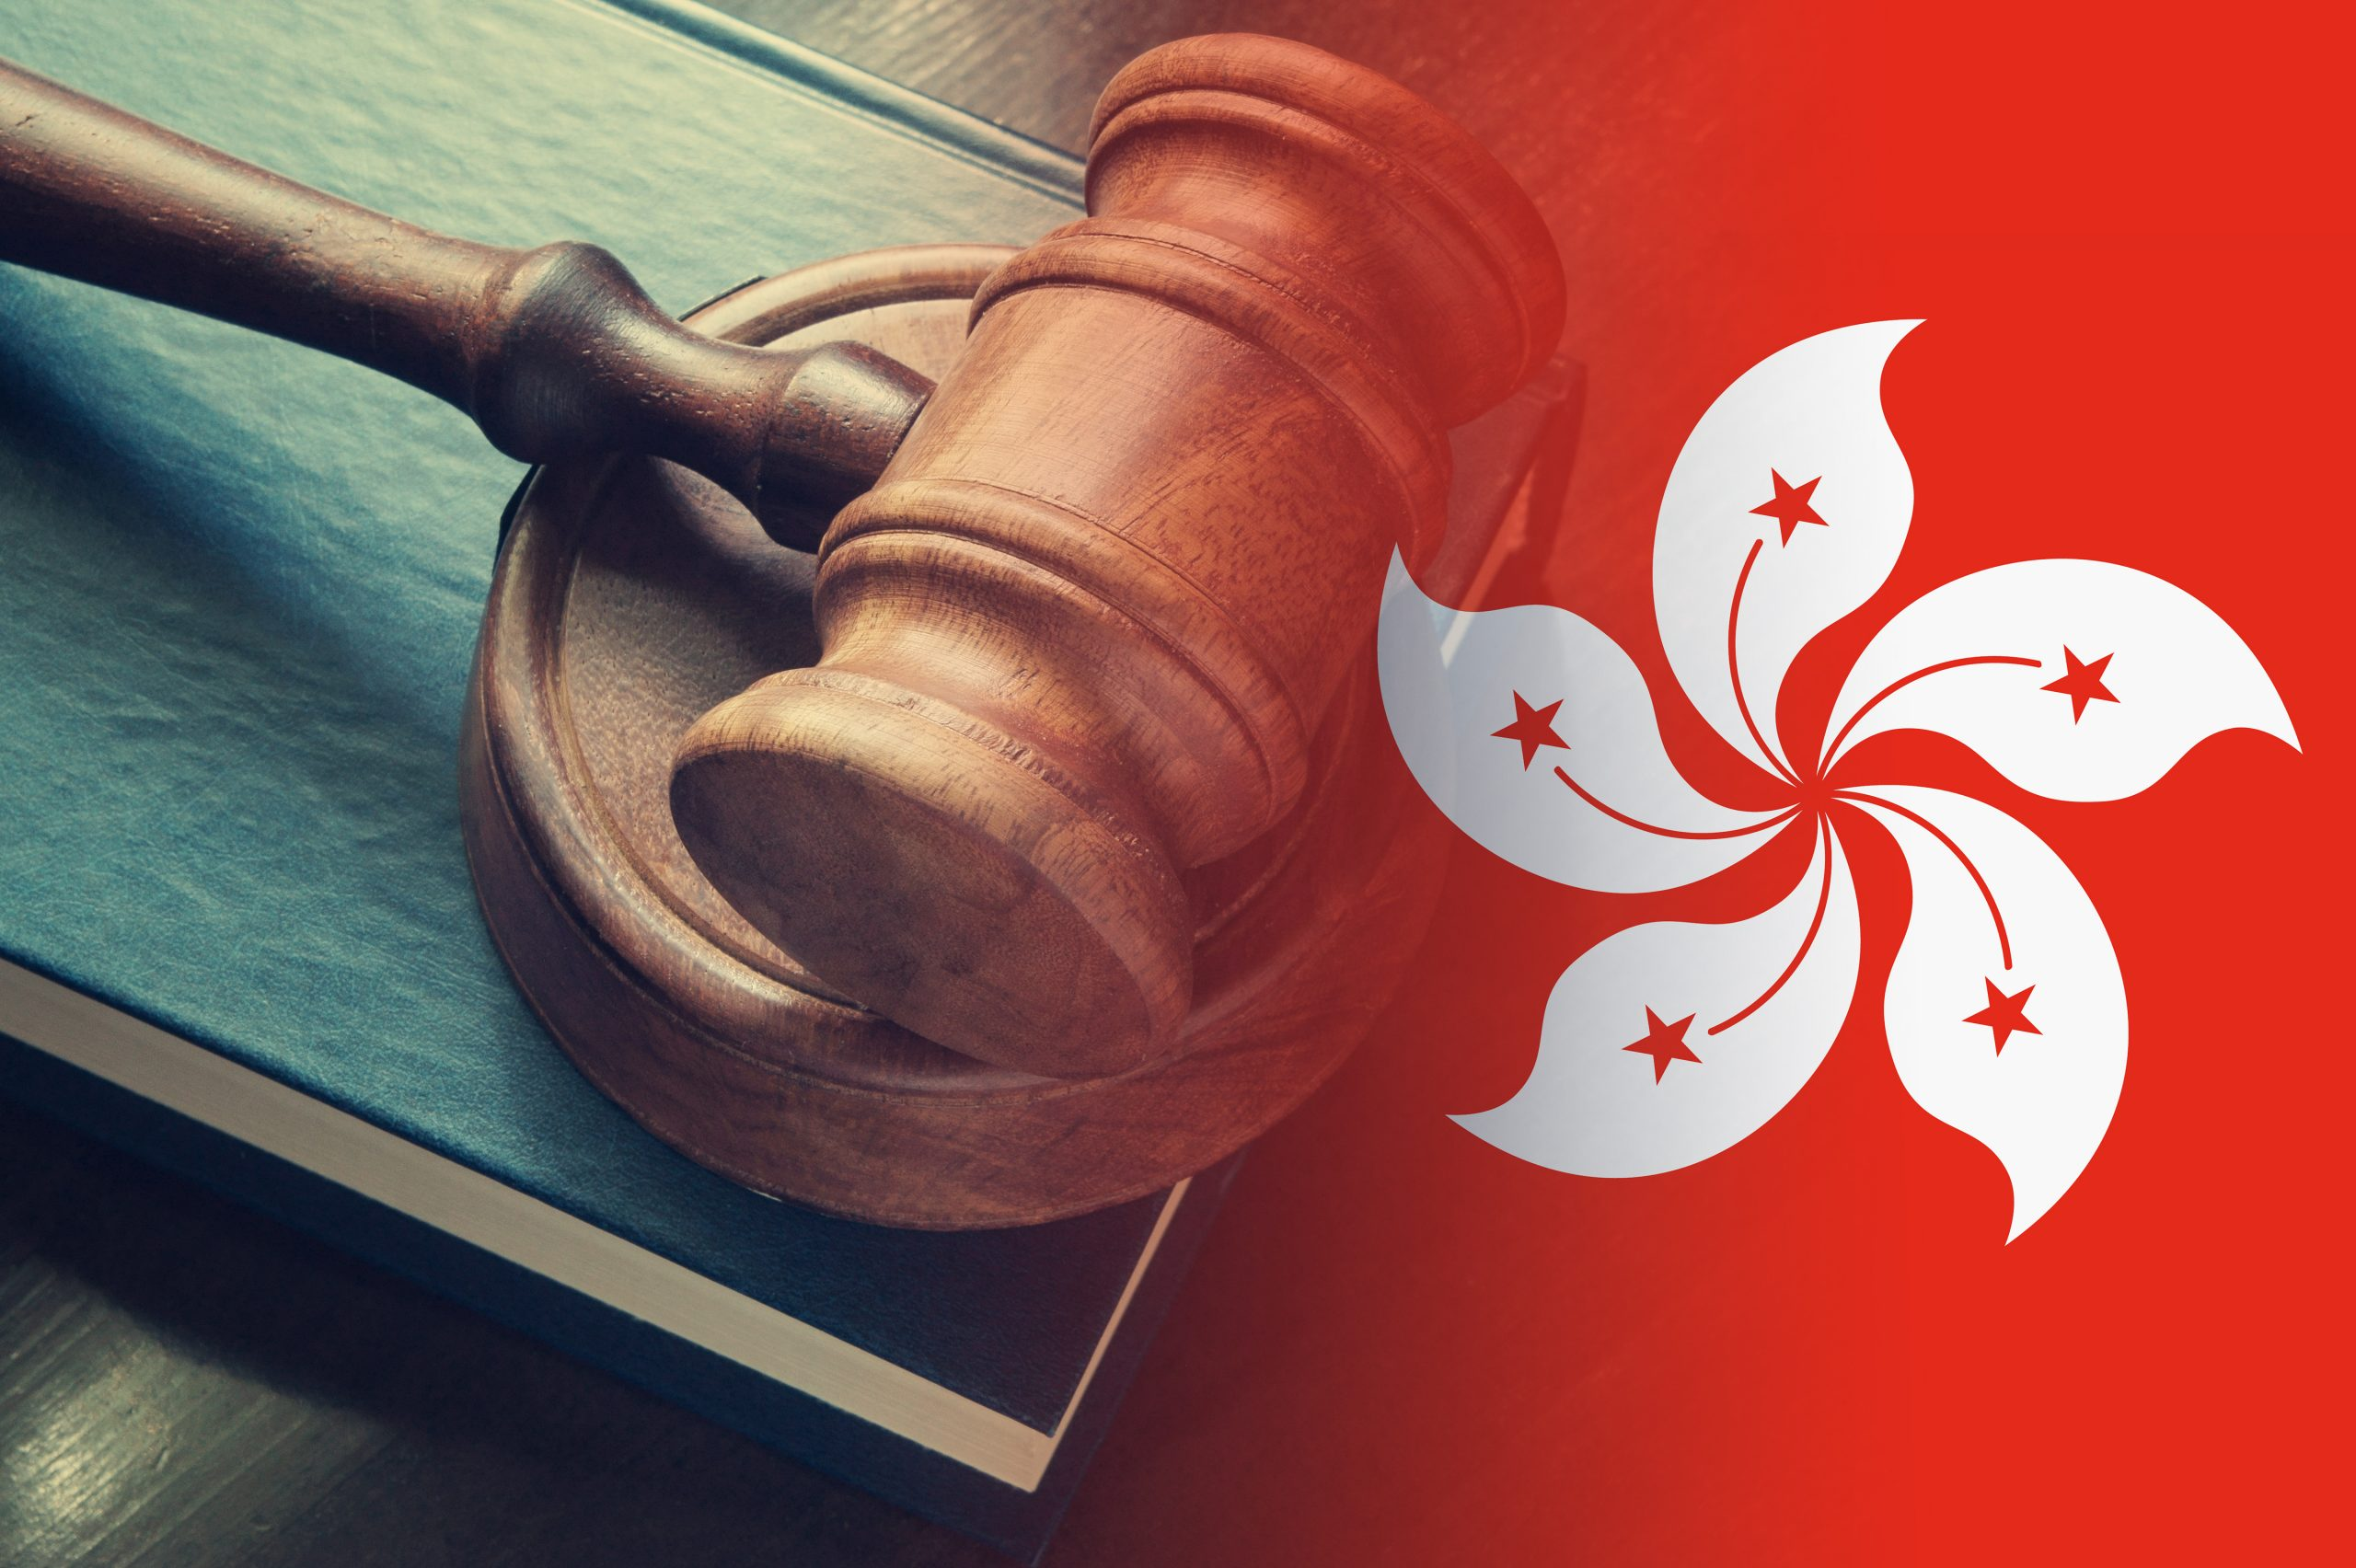 Jurisdictional Requirements To File For Divorce In Hong Kong 1